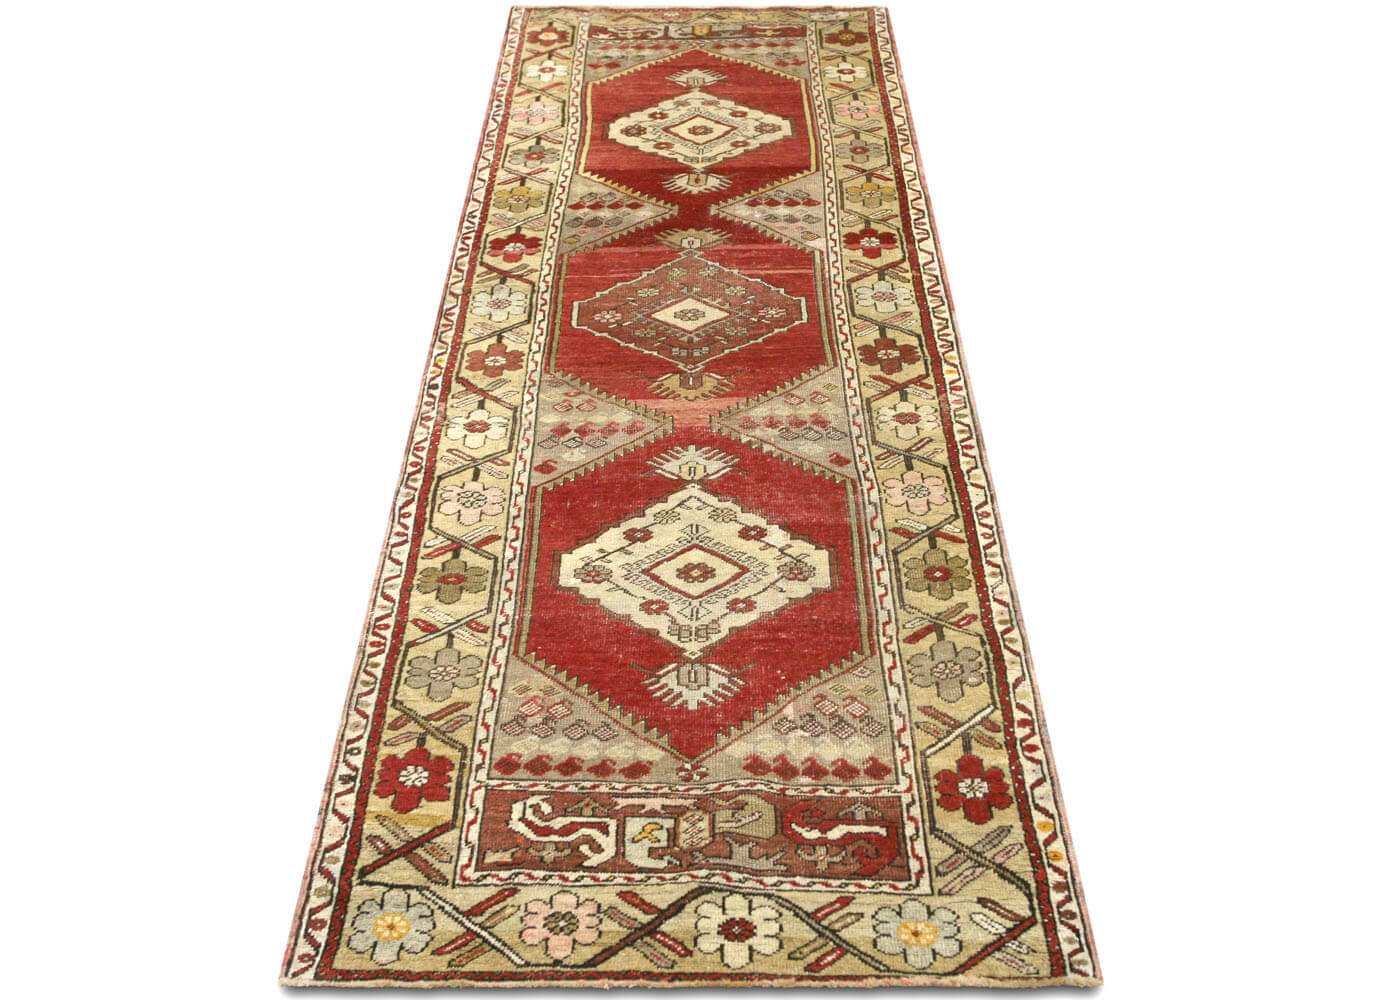 Vintage Turkish Oushak Runner - 3' x 8'7""